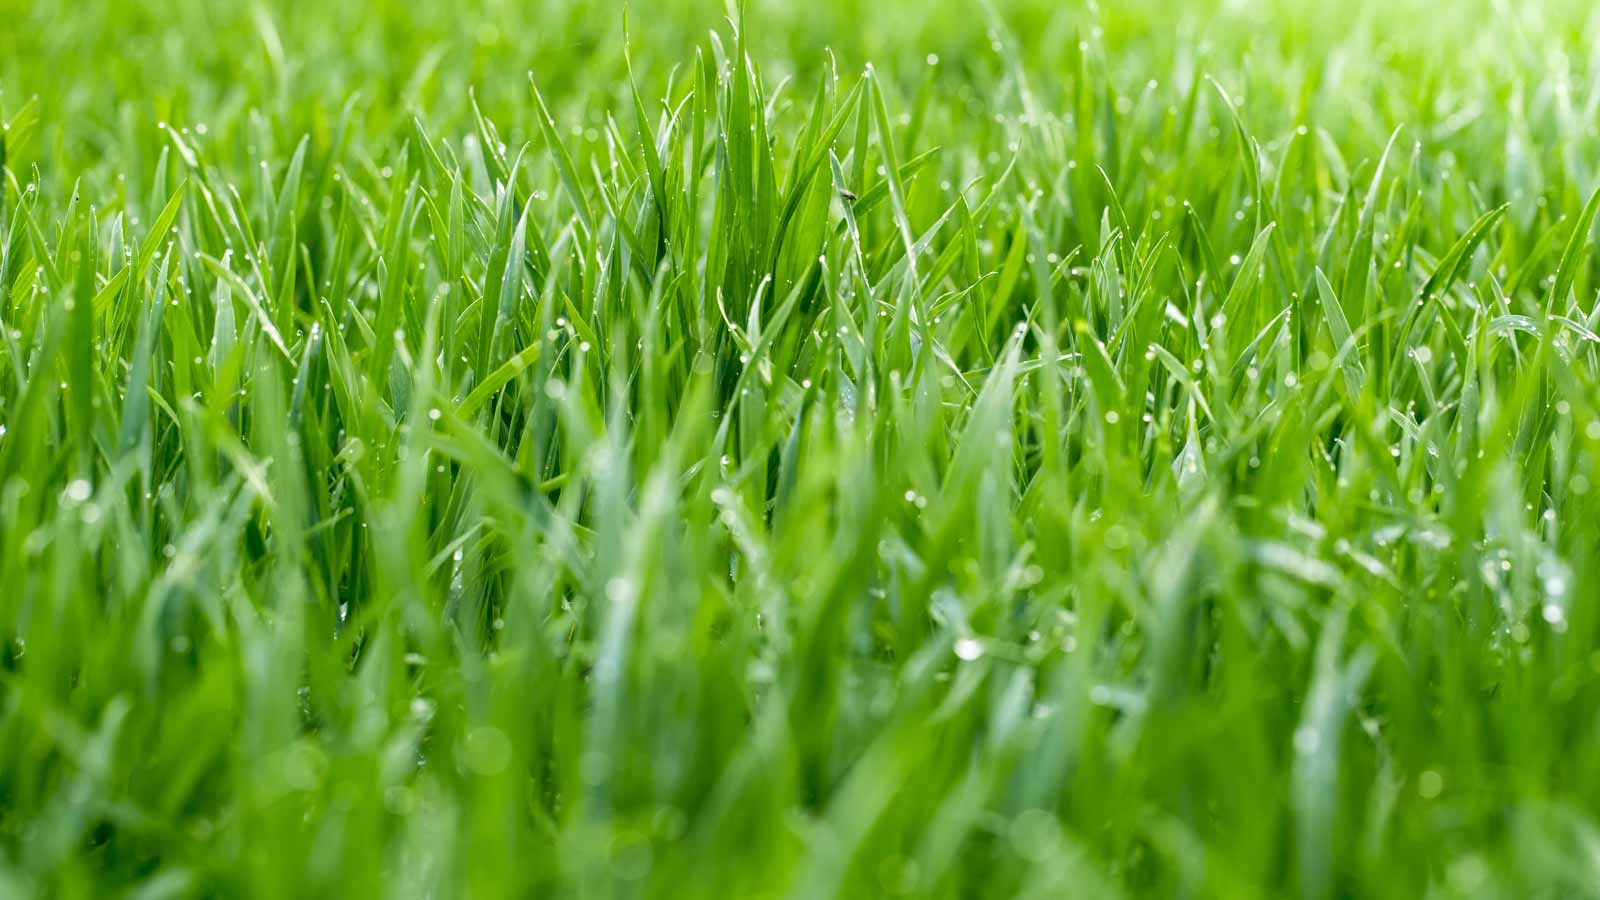 Image of clean grass